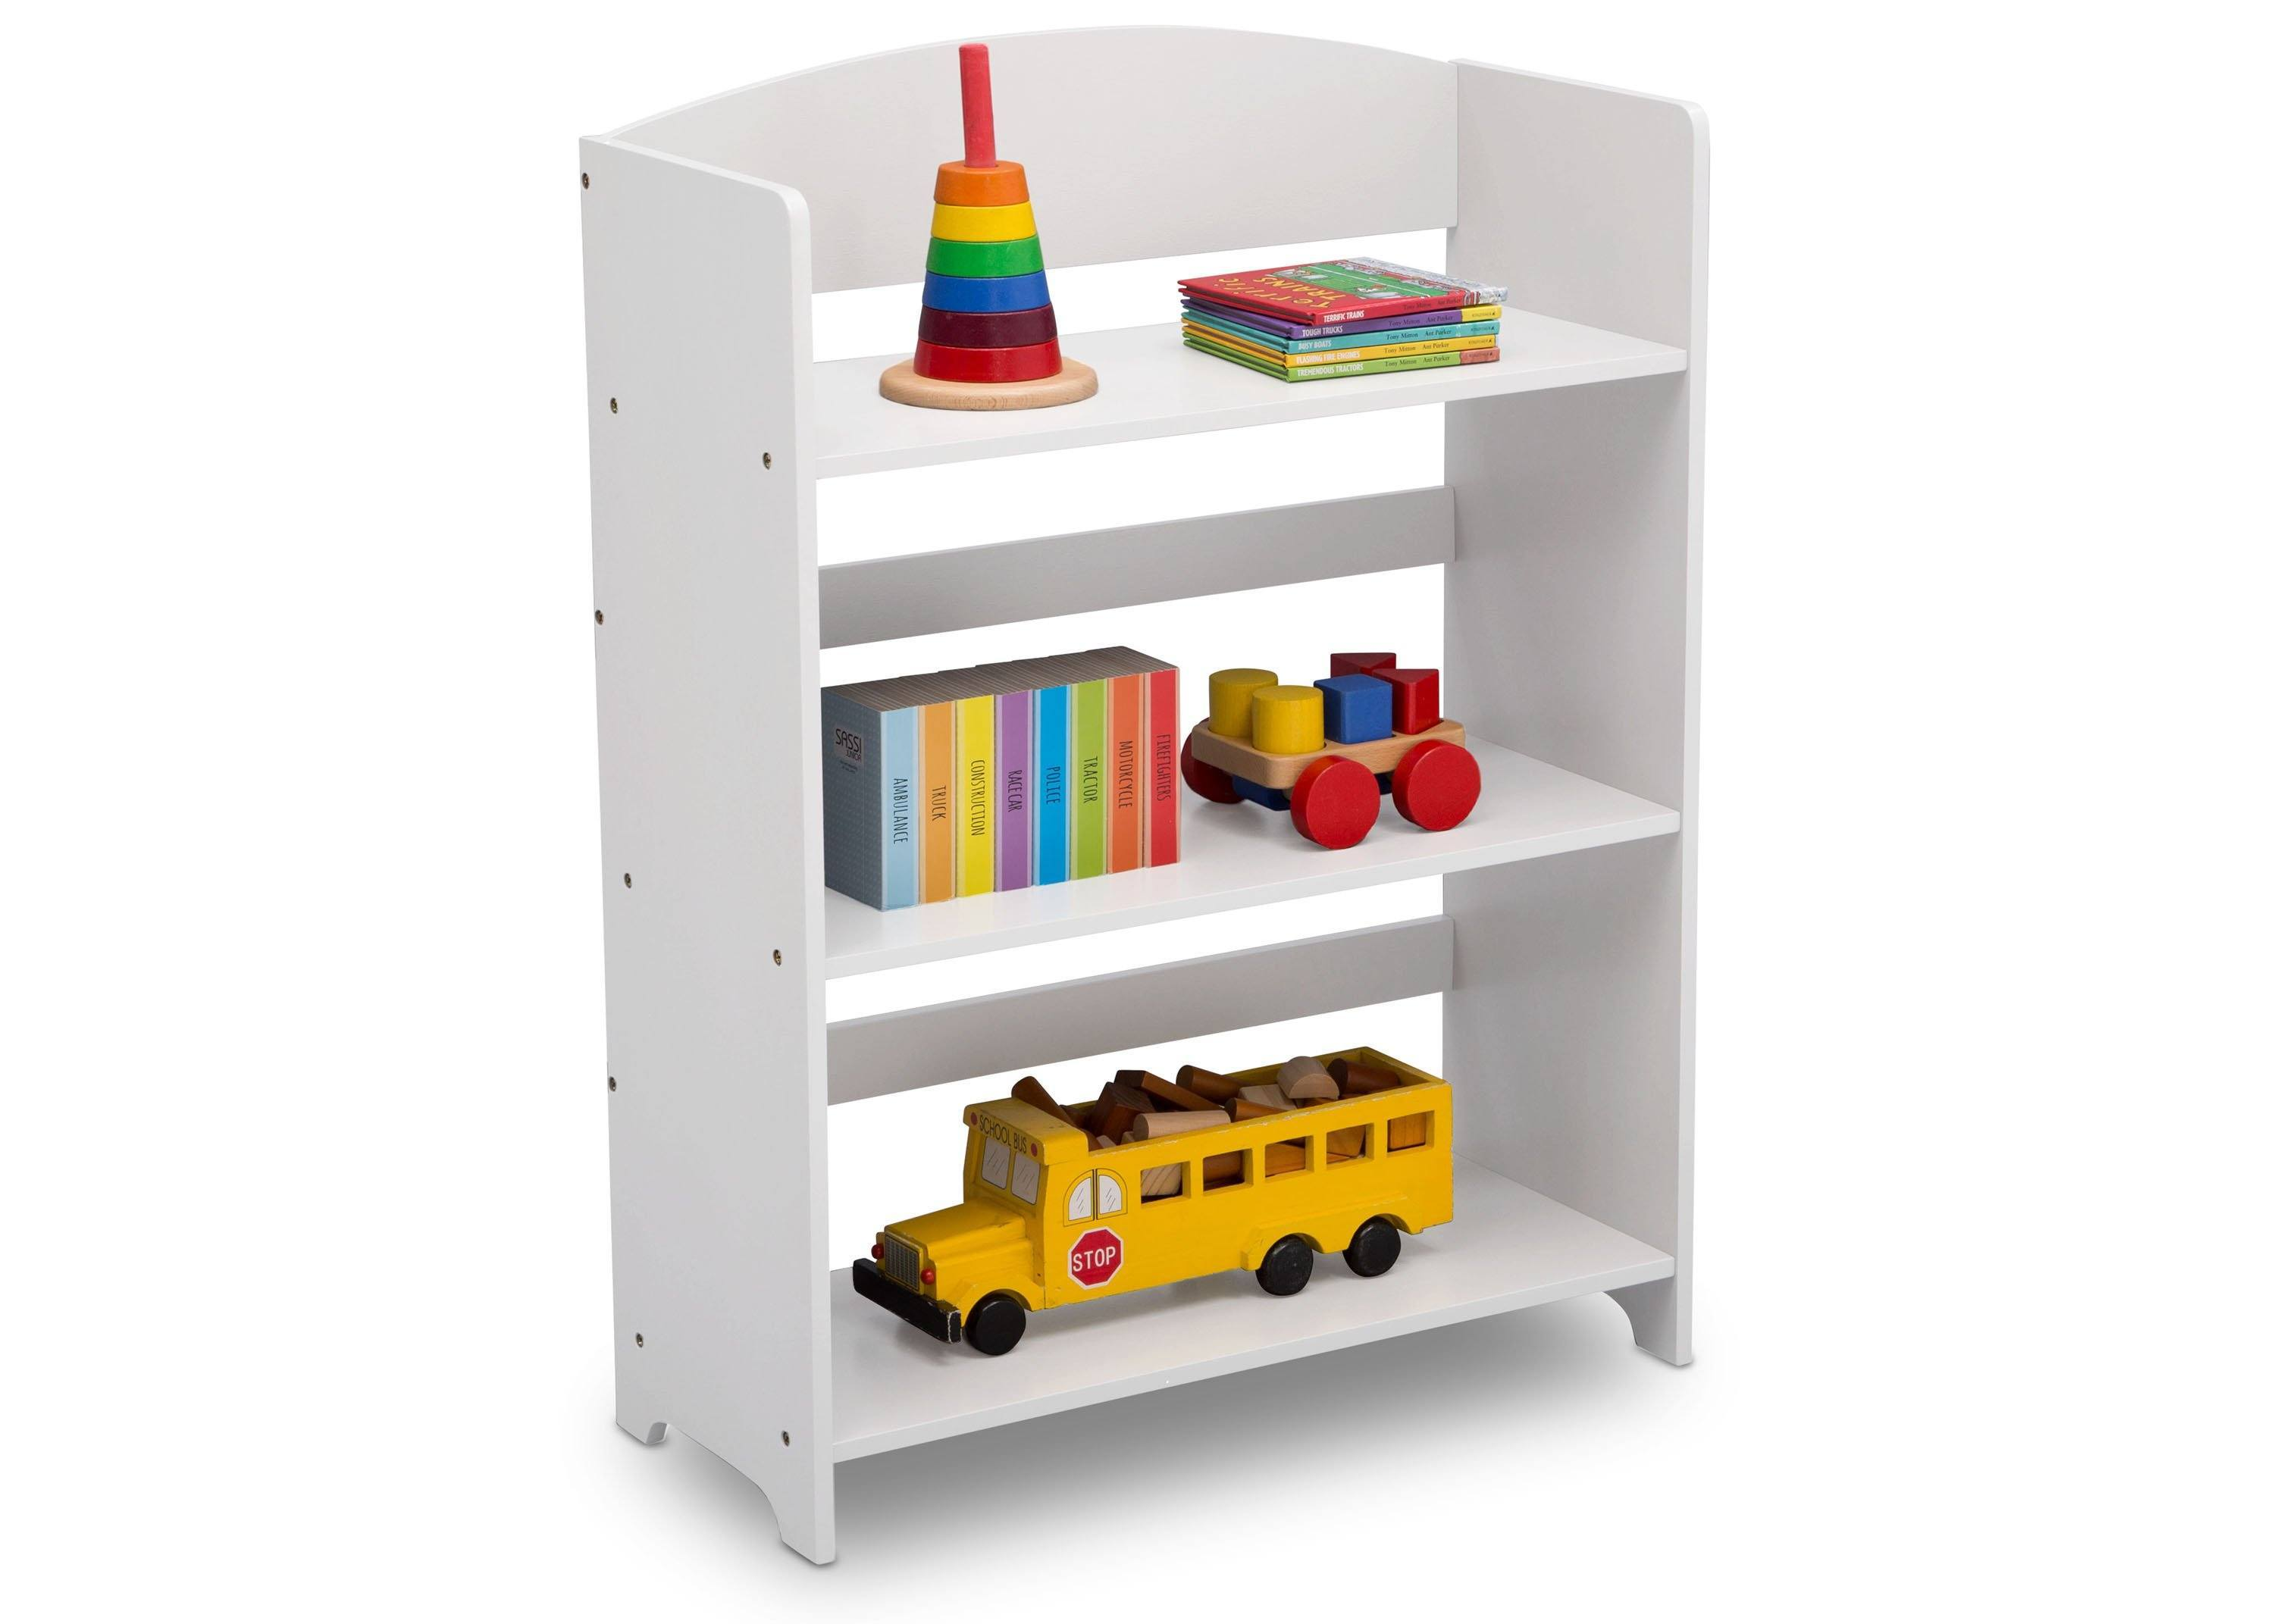 creation boys station themed of toddlers new bedroom living room storage desk for lovely lego shelf bookshelf awesome